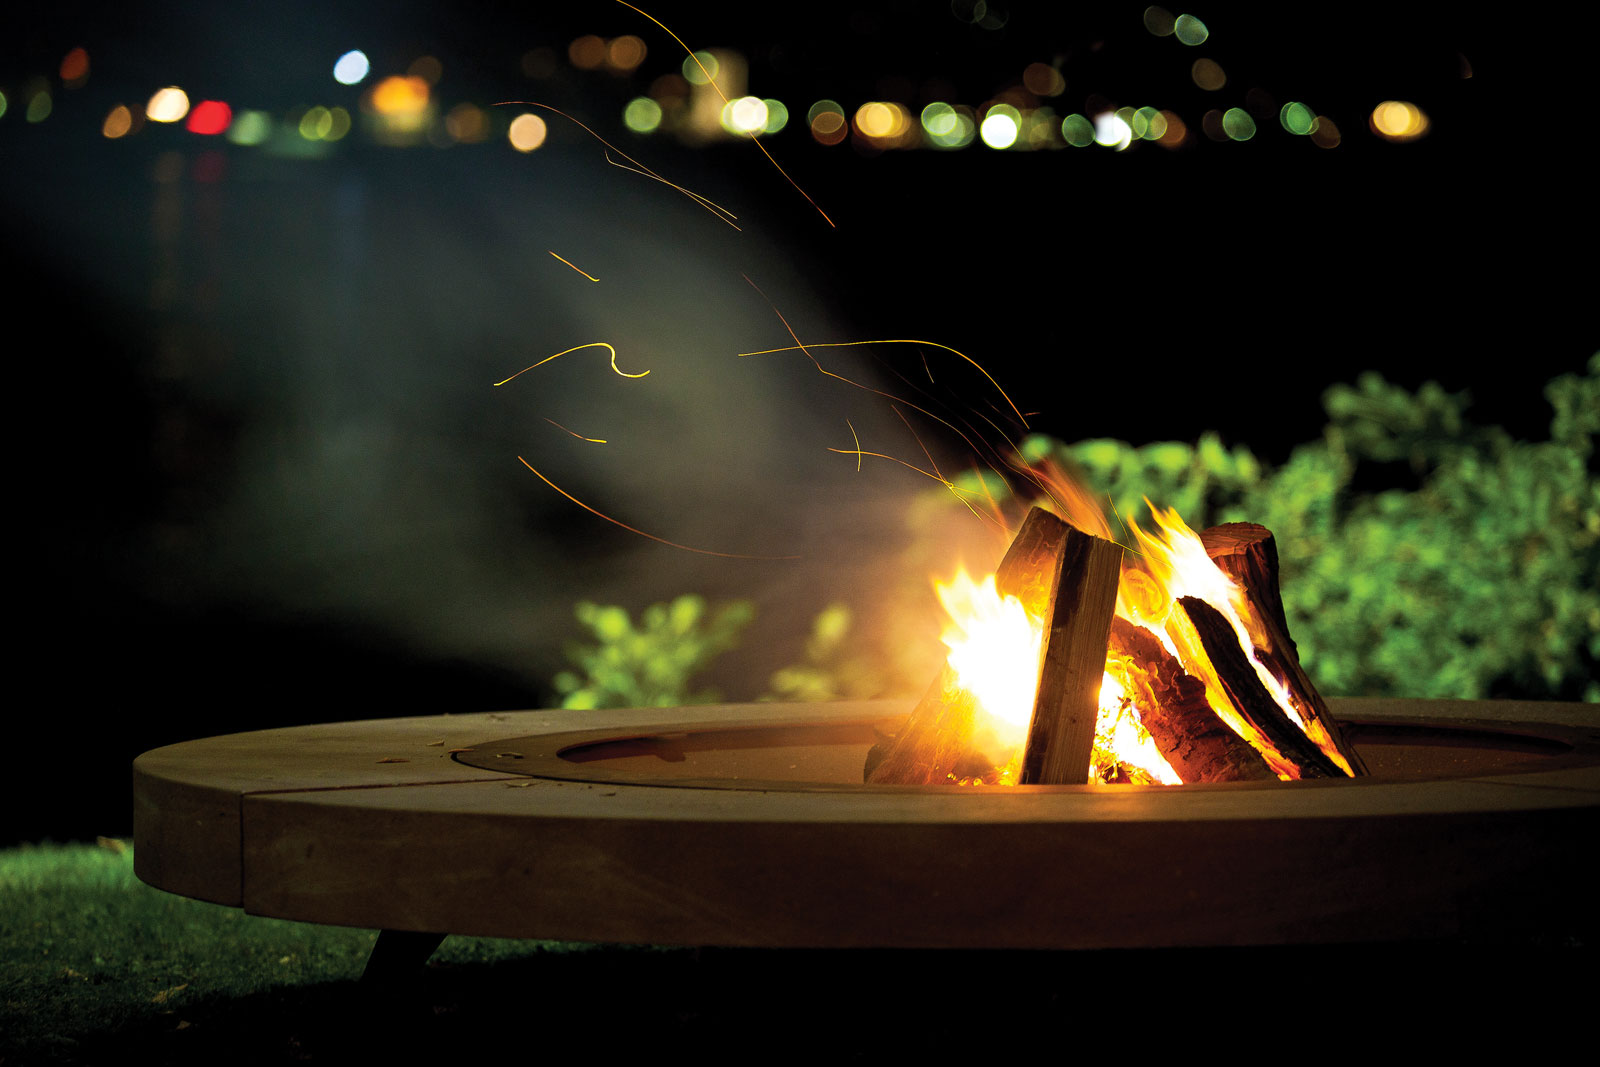 Outdoor Firepit Rondo by AK47